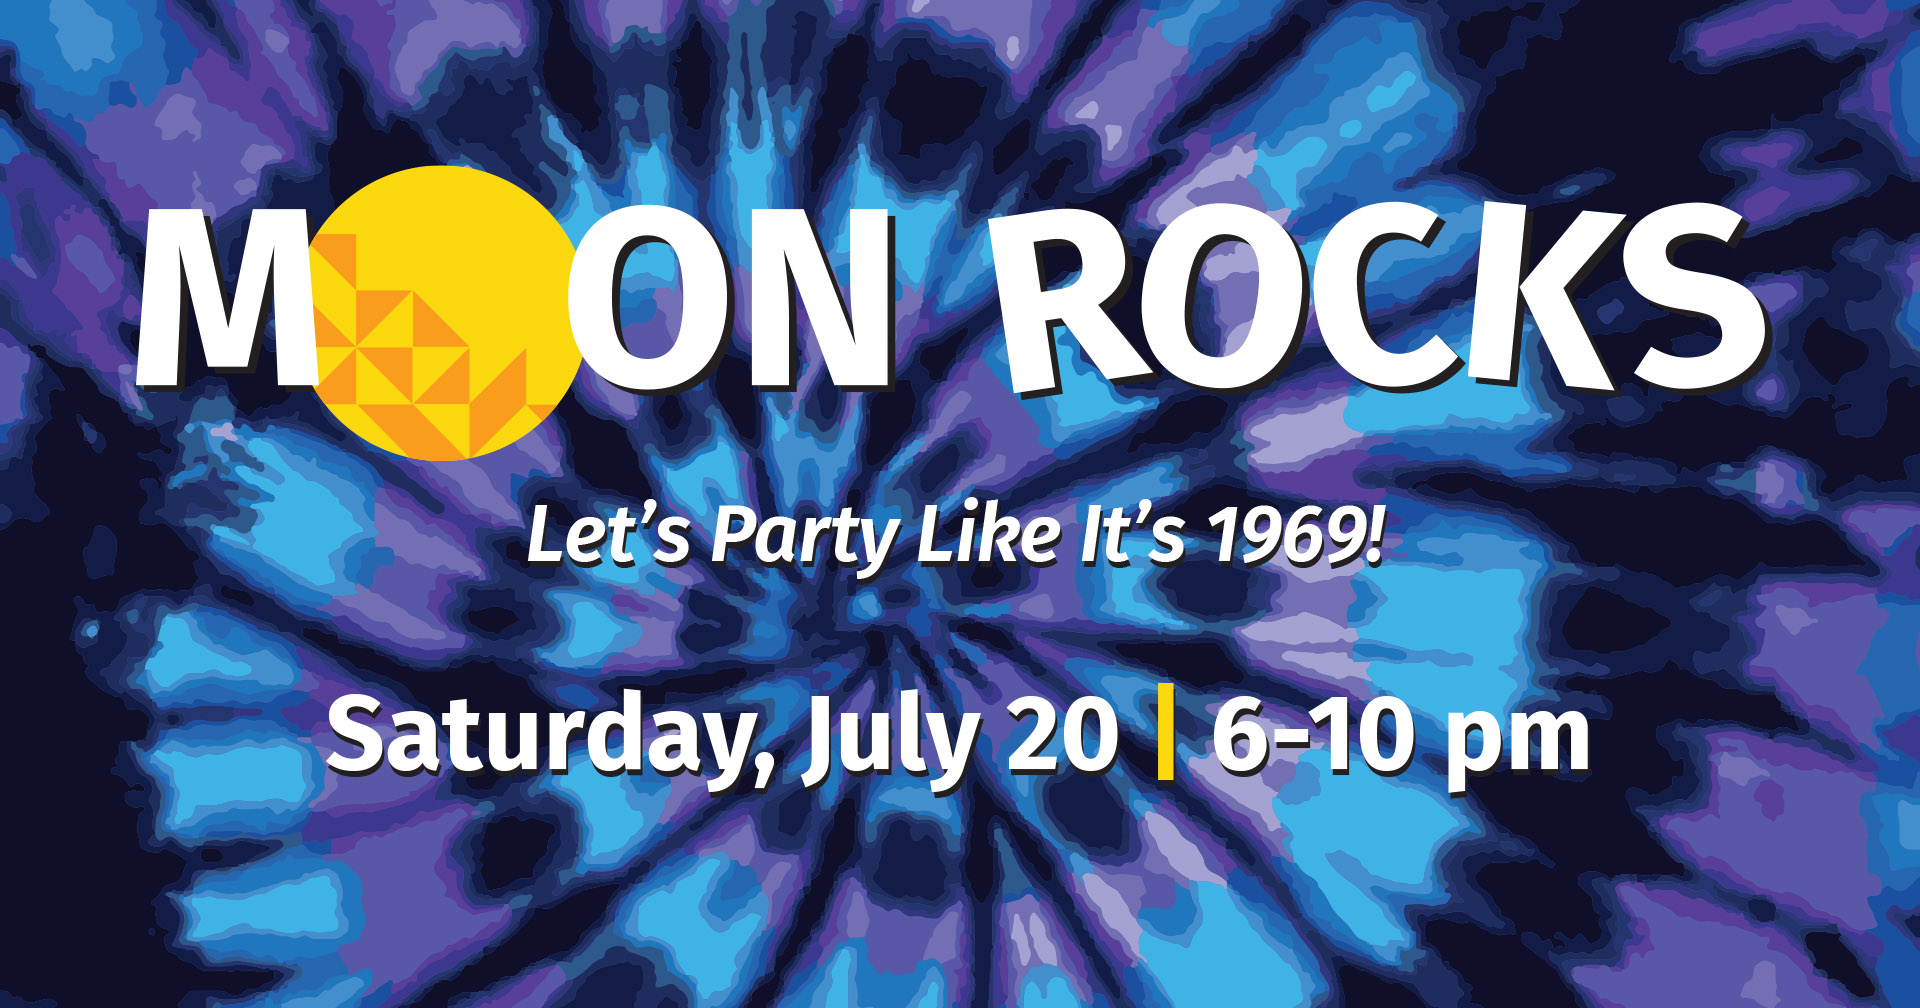 Don't Miss the Highlight of Kaleideum's Moonstruck Summer! Moon Rocks Party on July 20!